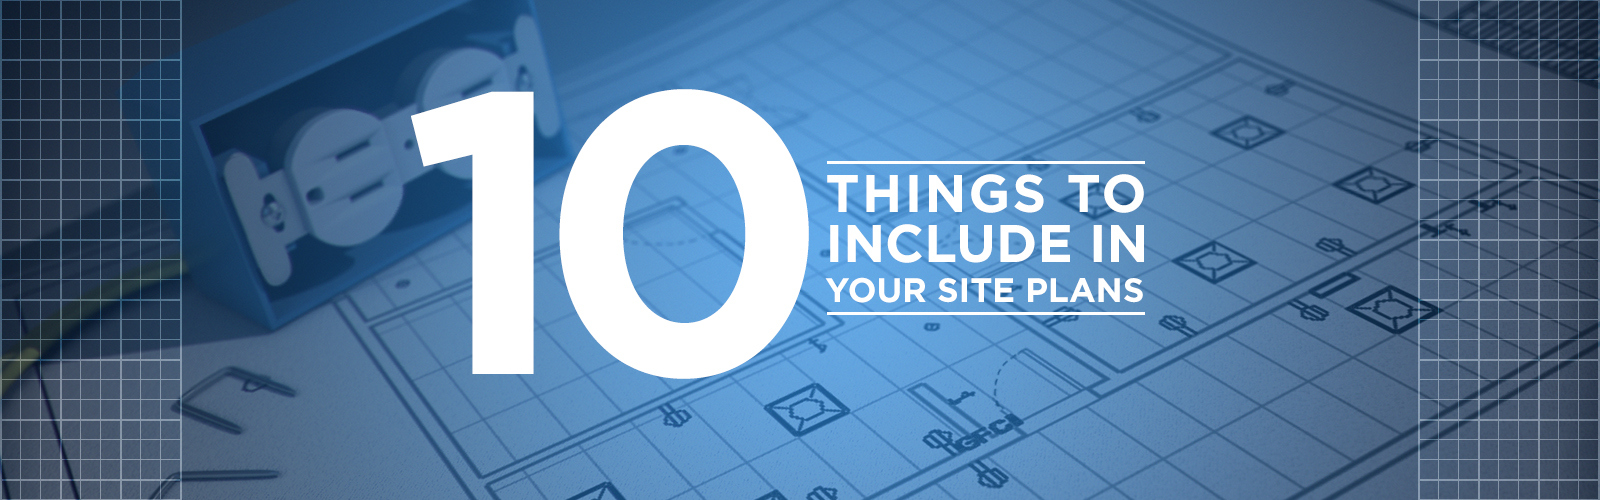 10 things to make sure you include in your site plan | Pluralsight